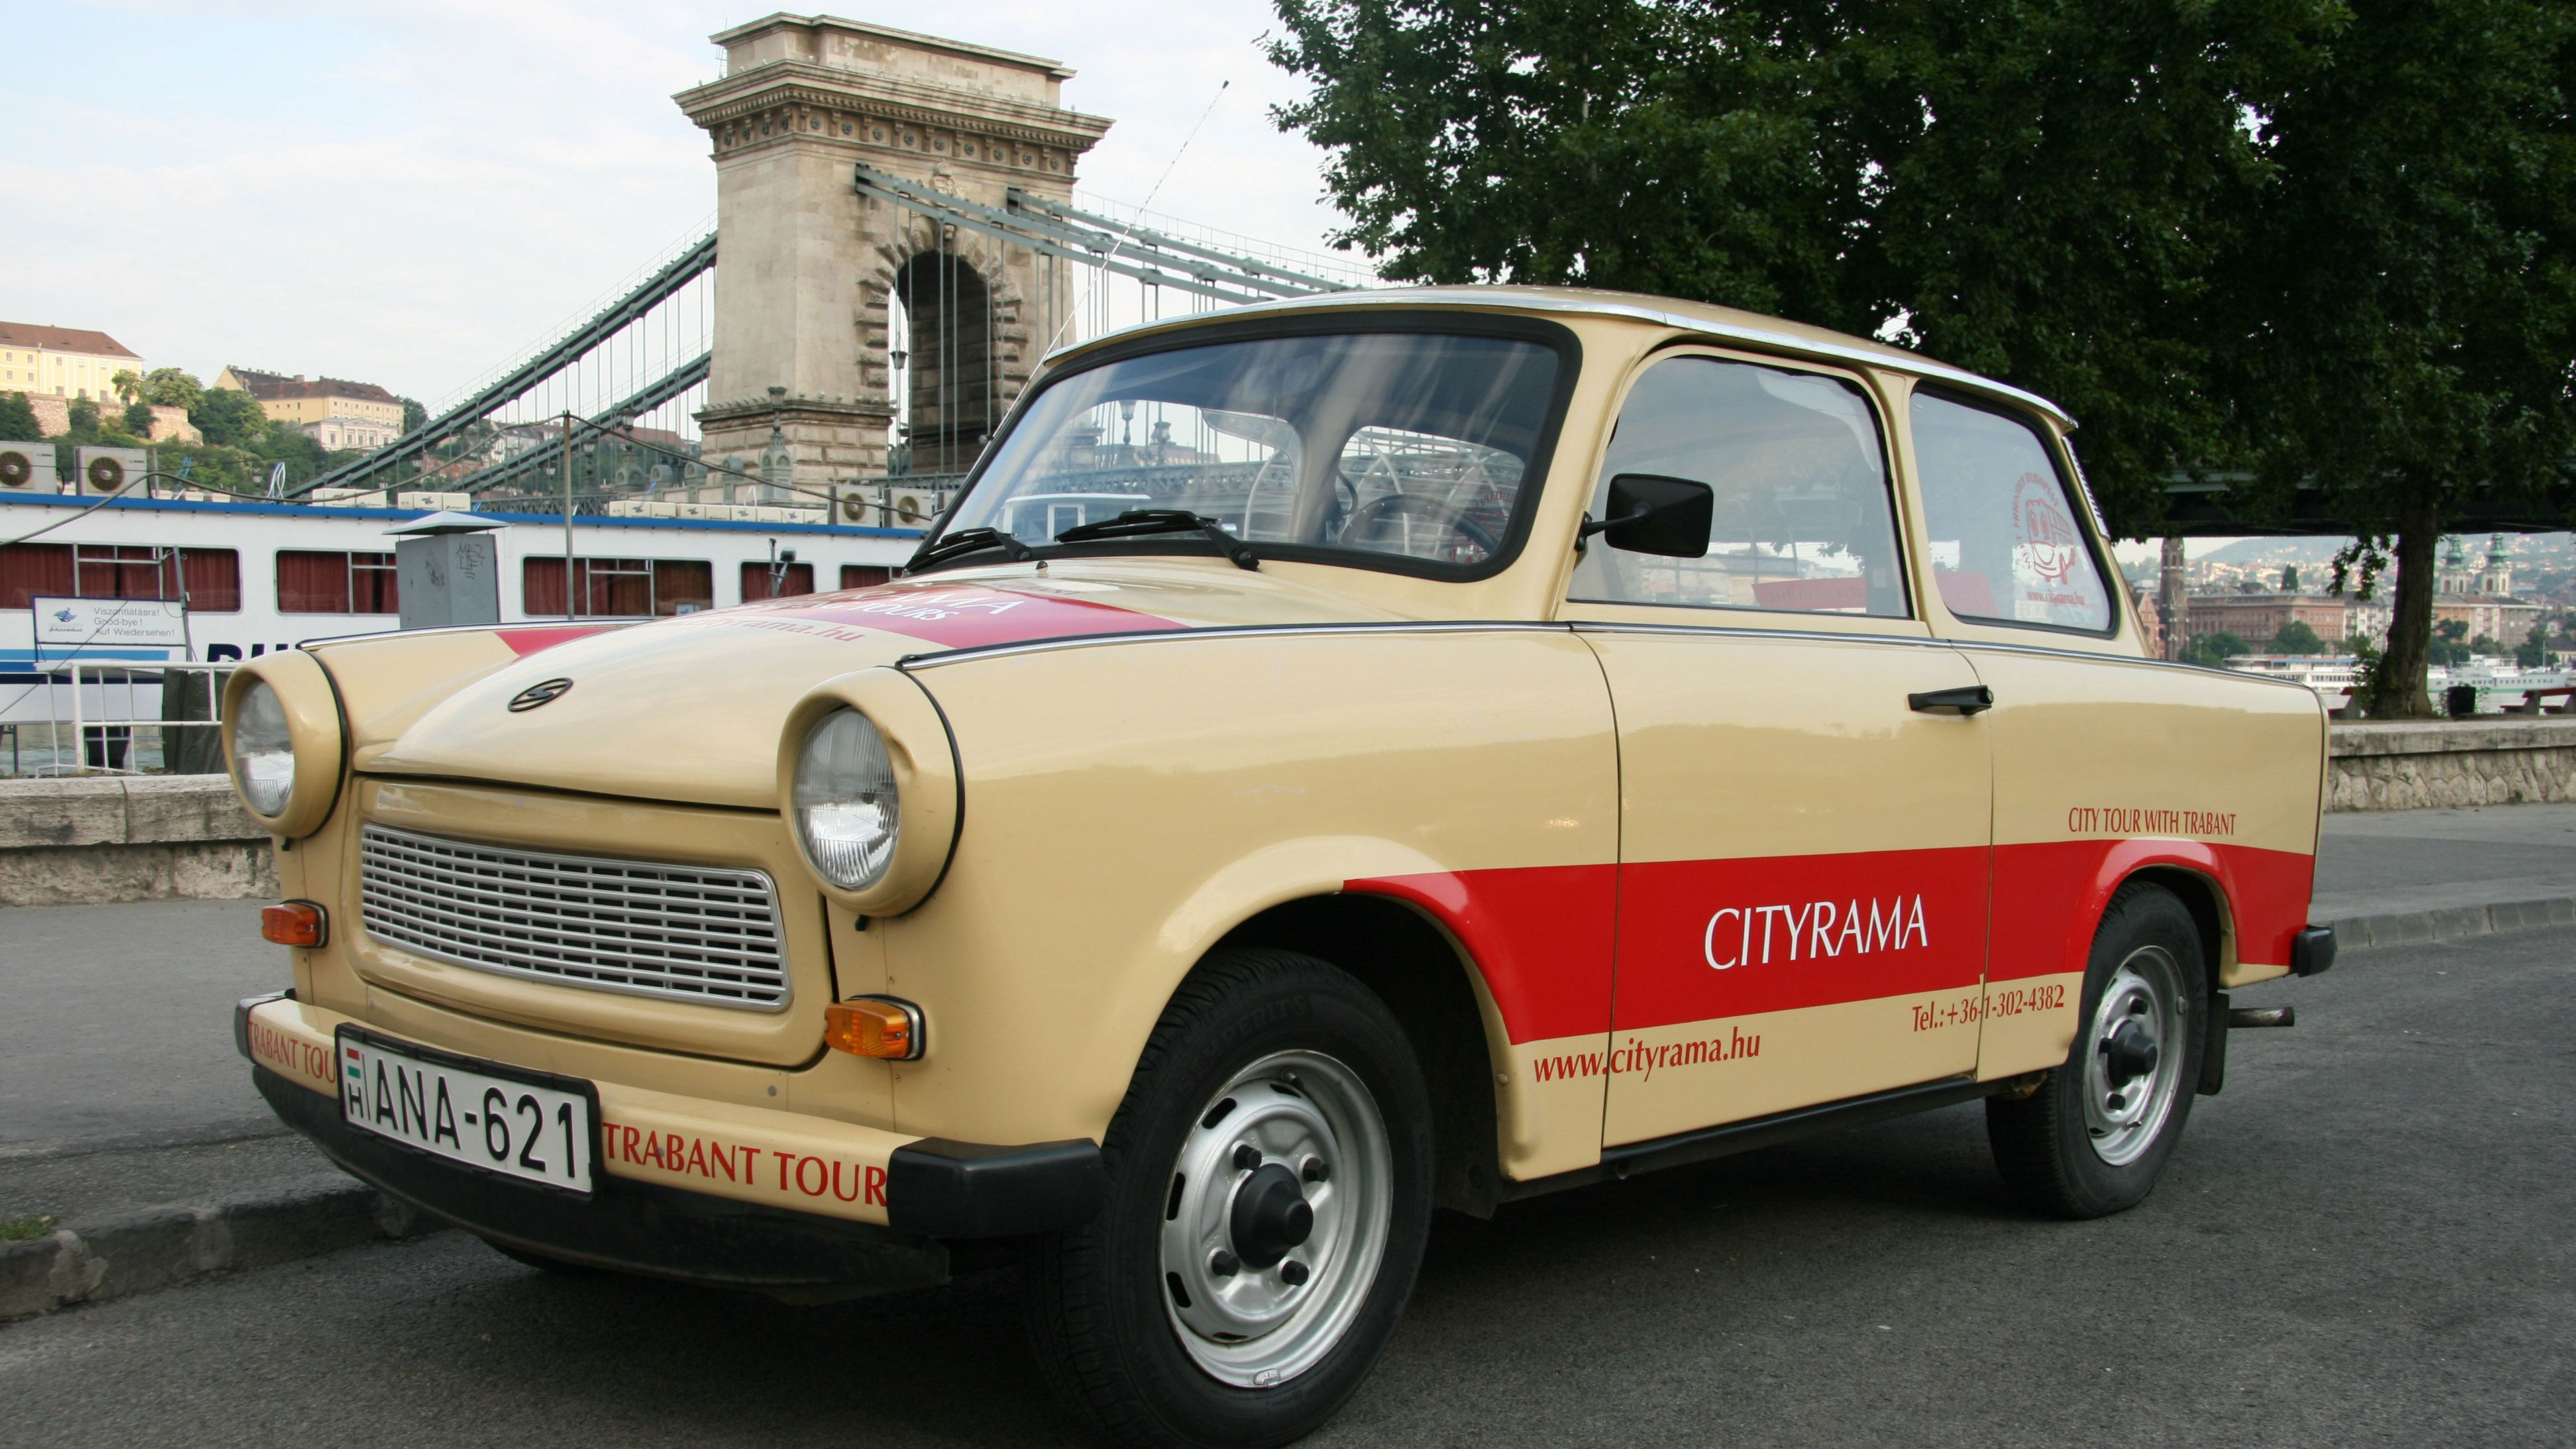 A Trabant Car parked on the side of the road in Budapest